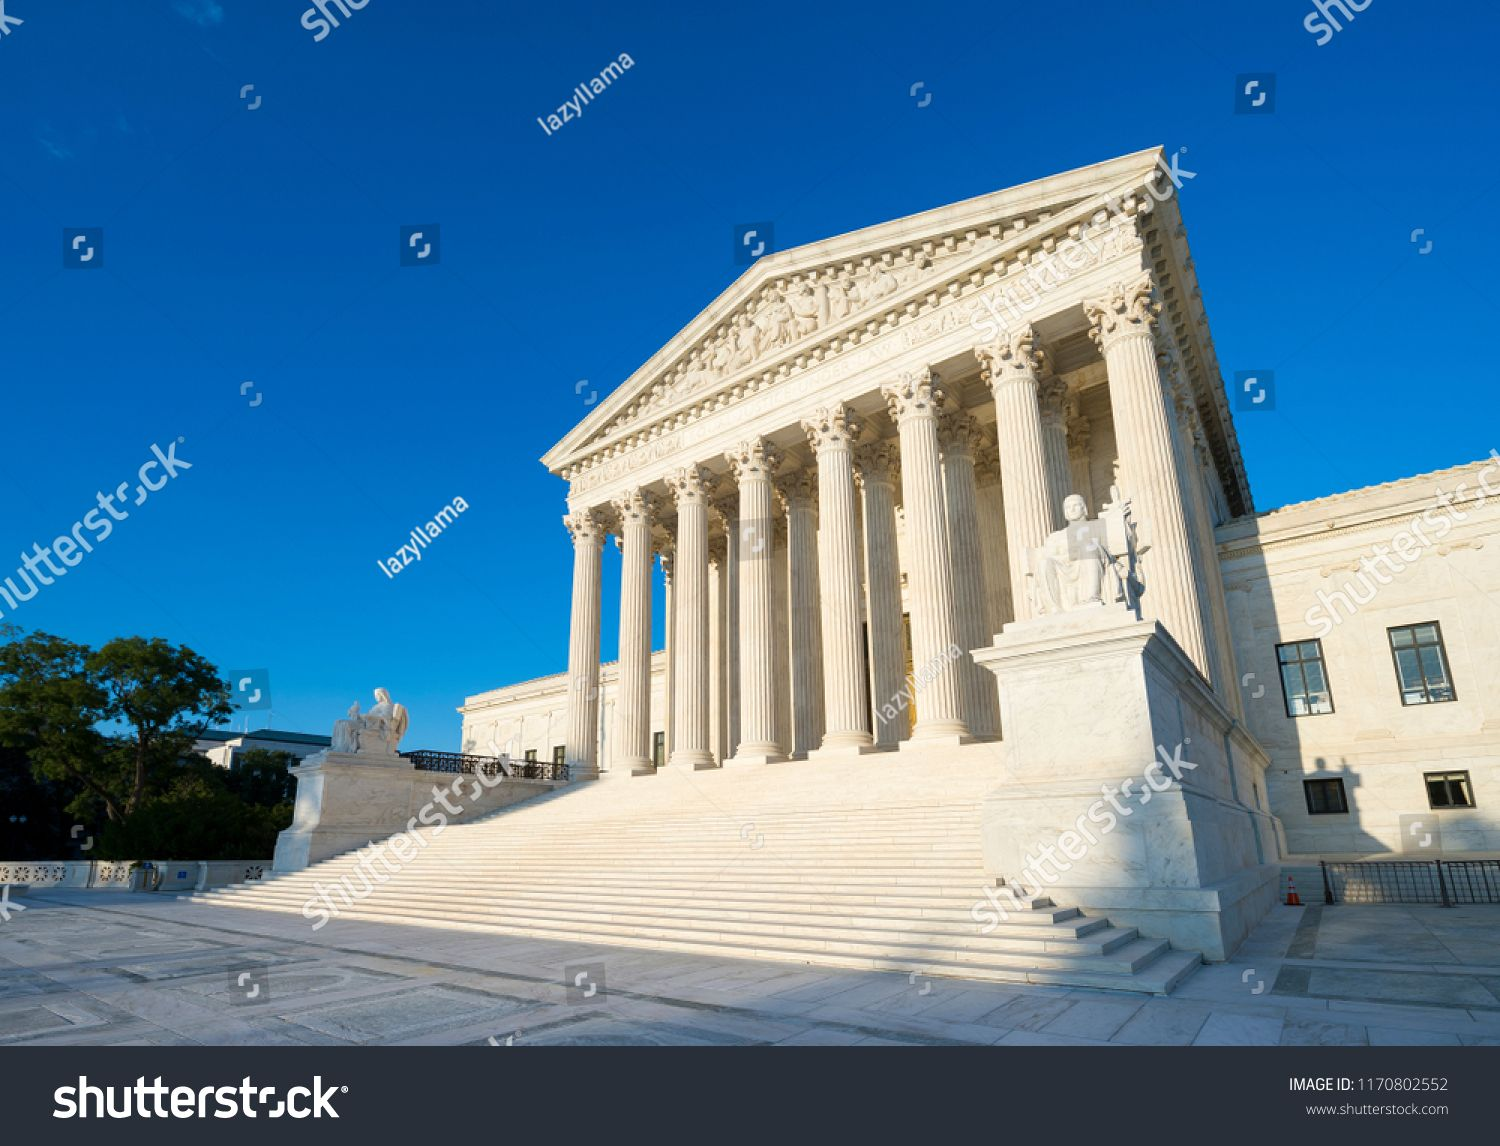 Neoclassical Columned Entrance Portico To The Us Supreme Court Building In Washington Dc Sponsored Sponsored Portico Supreme Court Building Neoclassical